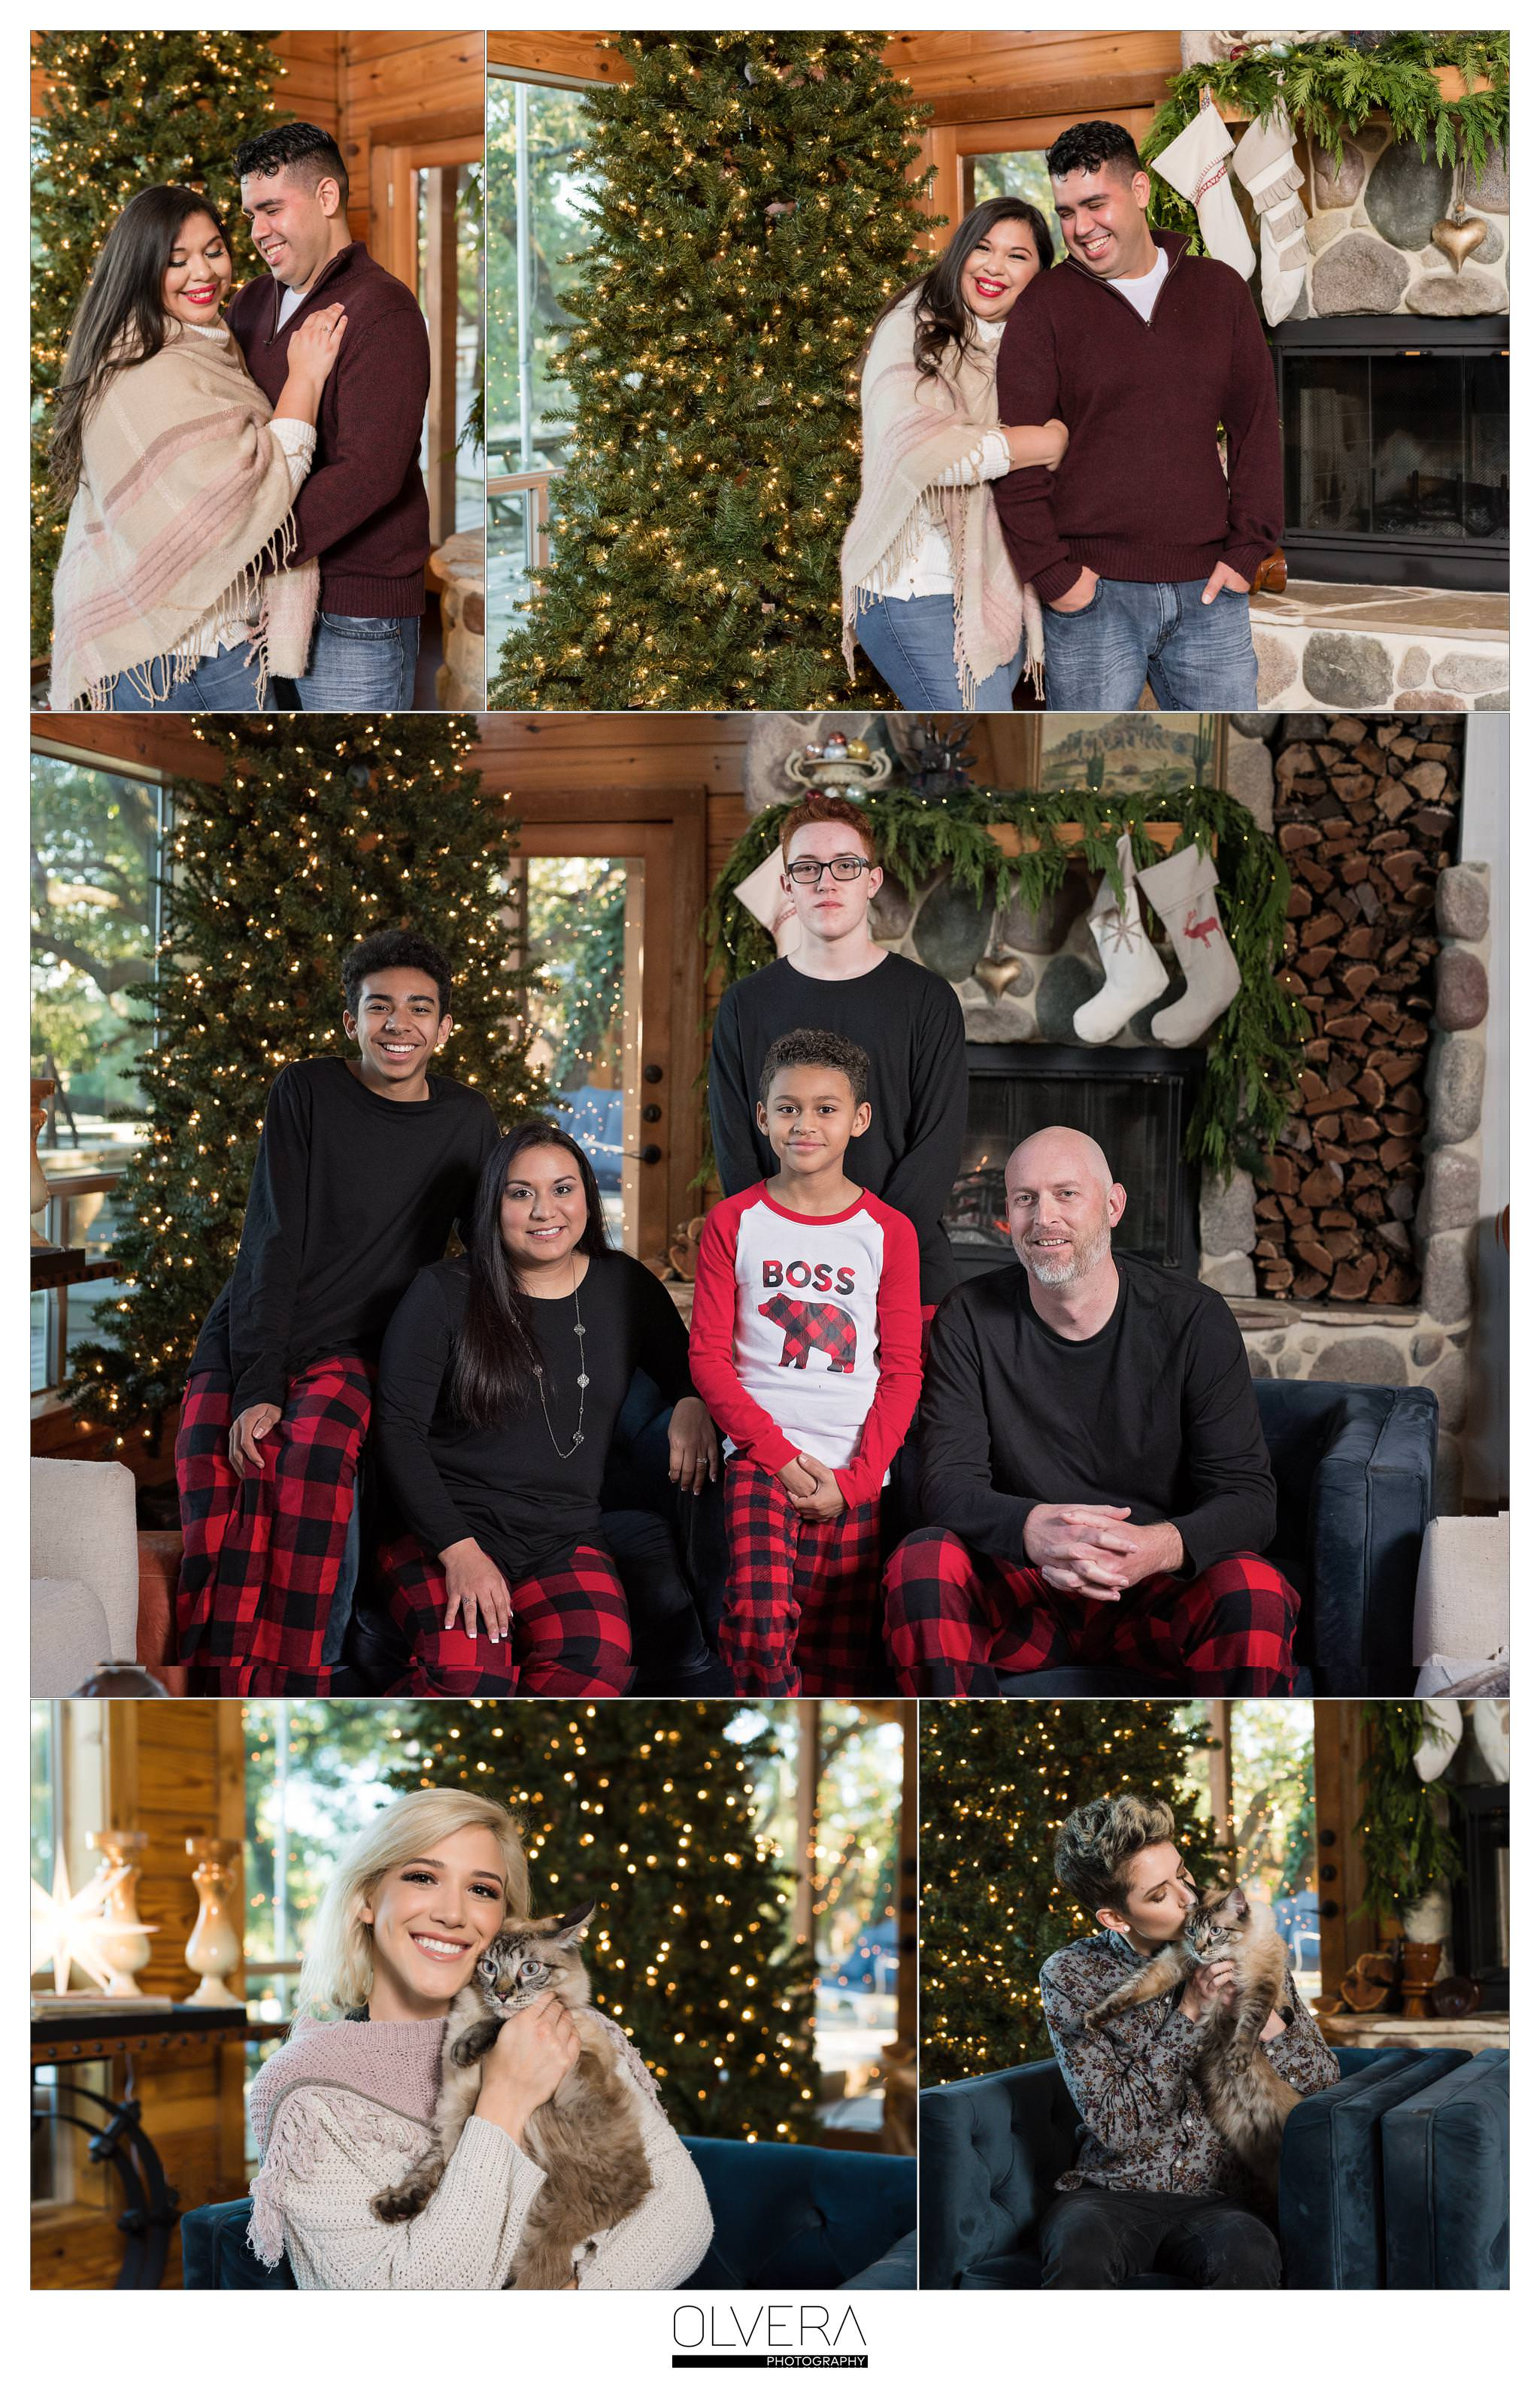 San-Antonio-Mini-Sessions_Christmas-Cabin-Tent_Olvera-Photography-3